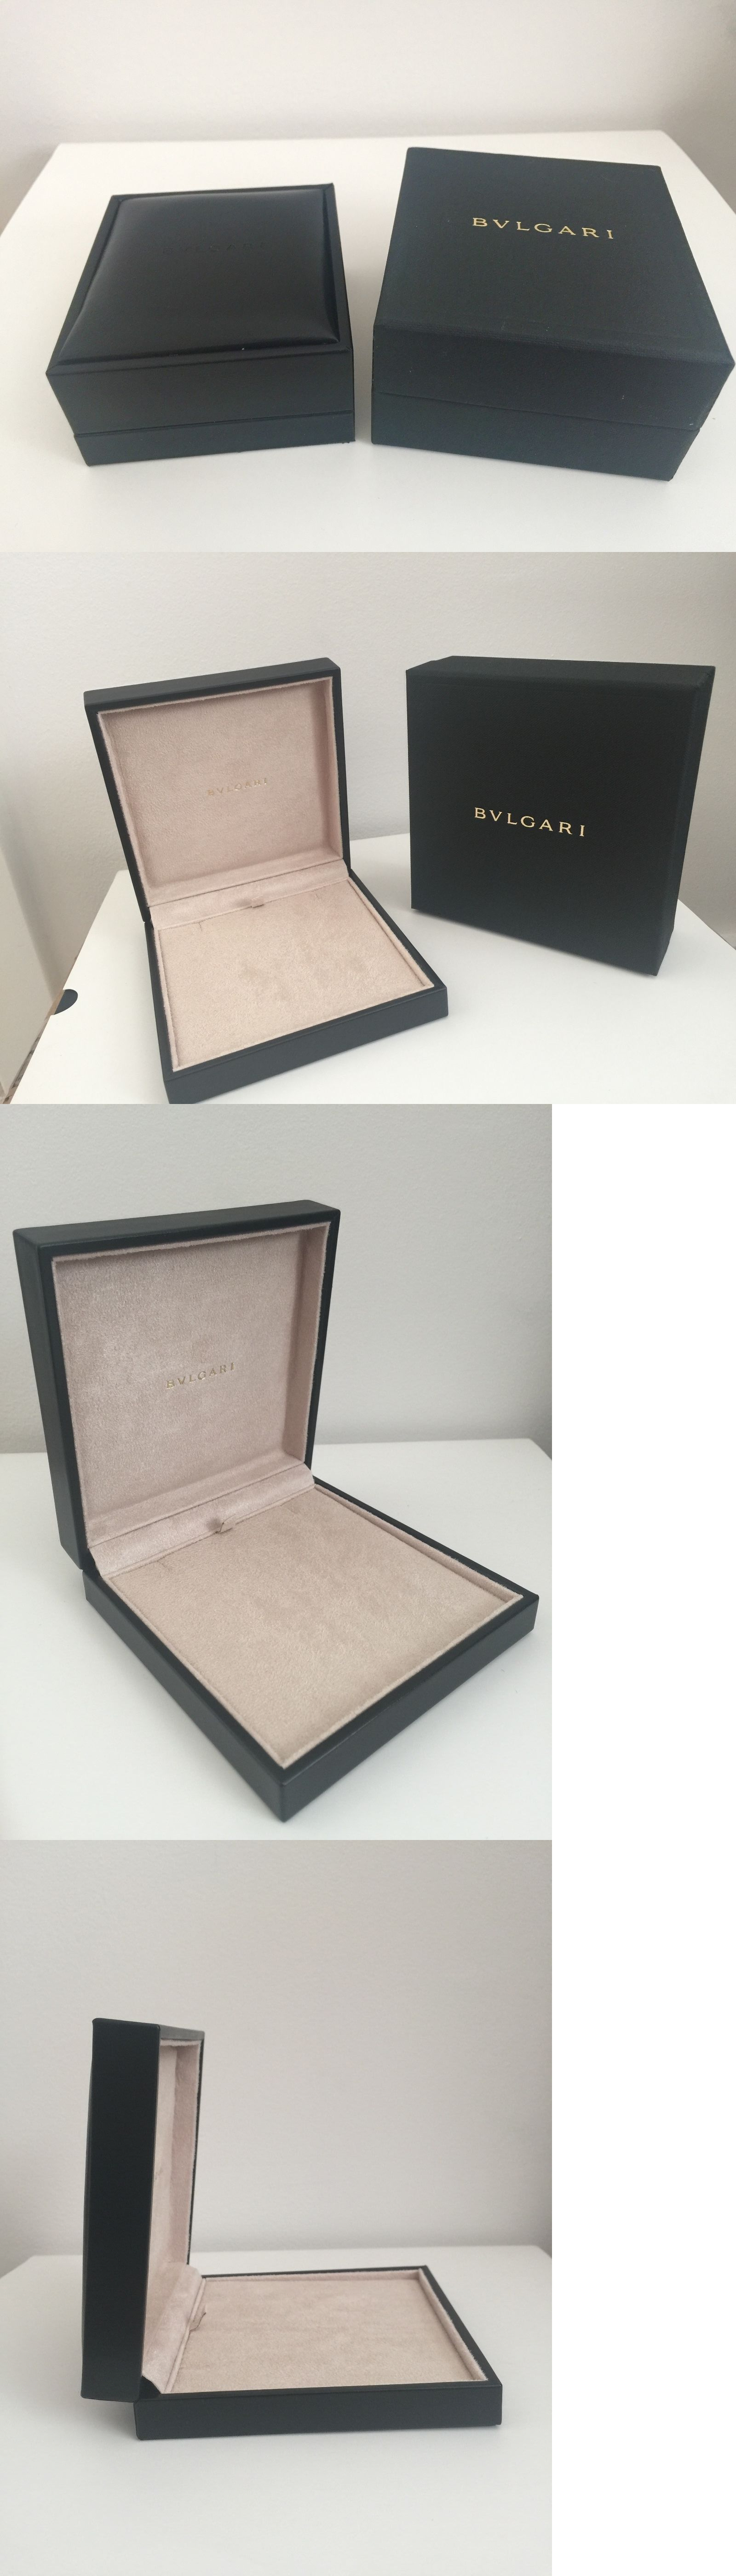 Jewelry Boxes 3820 Bvlgari Necklace Box BUY IT NOW ONLY 90 on